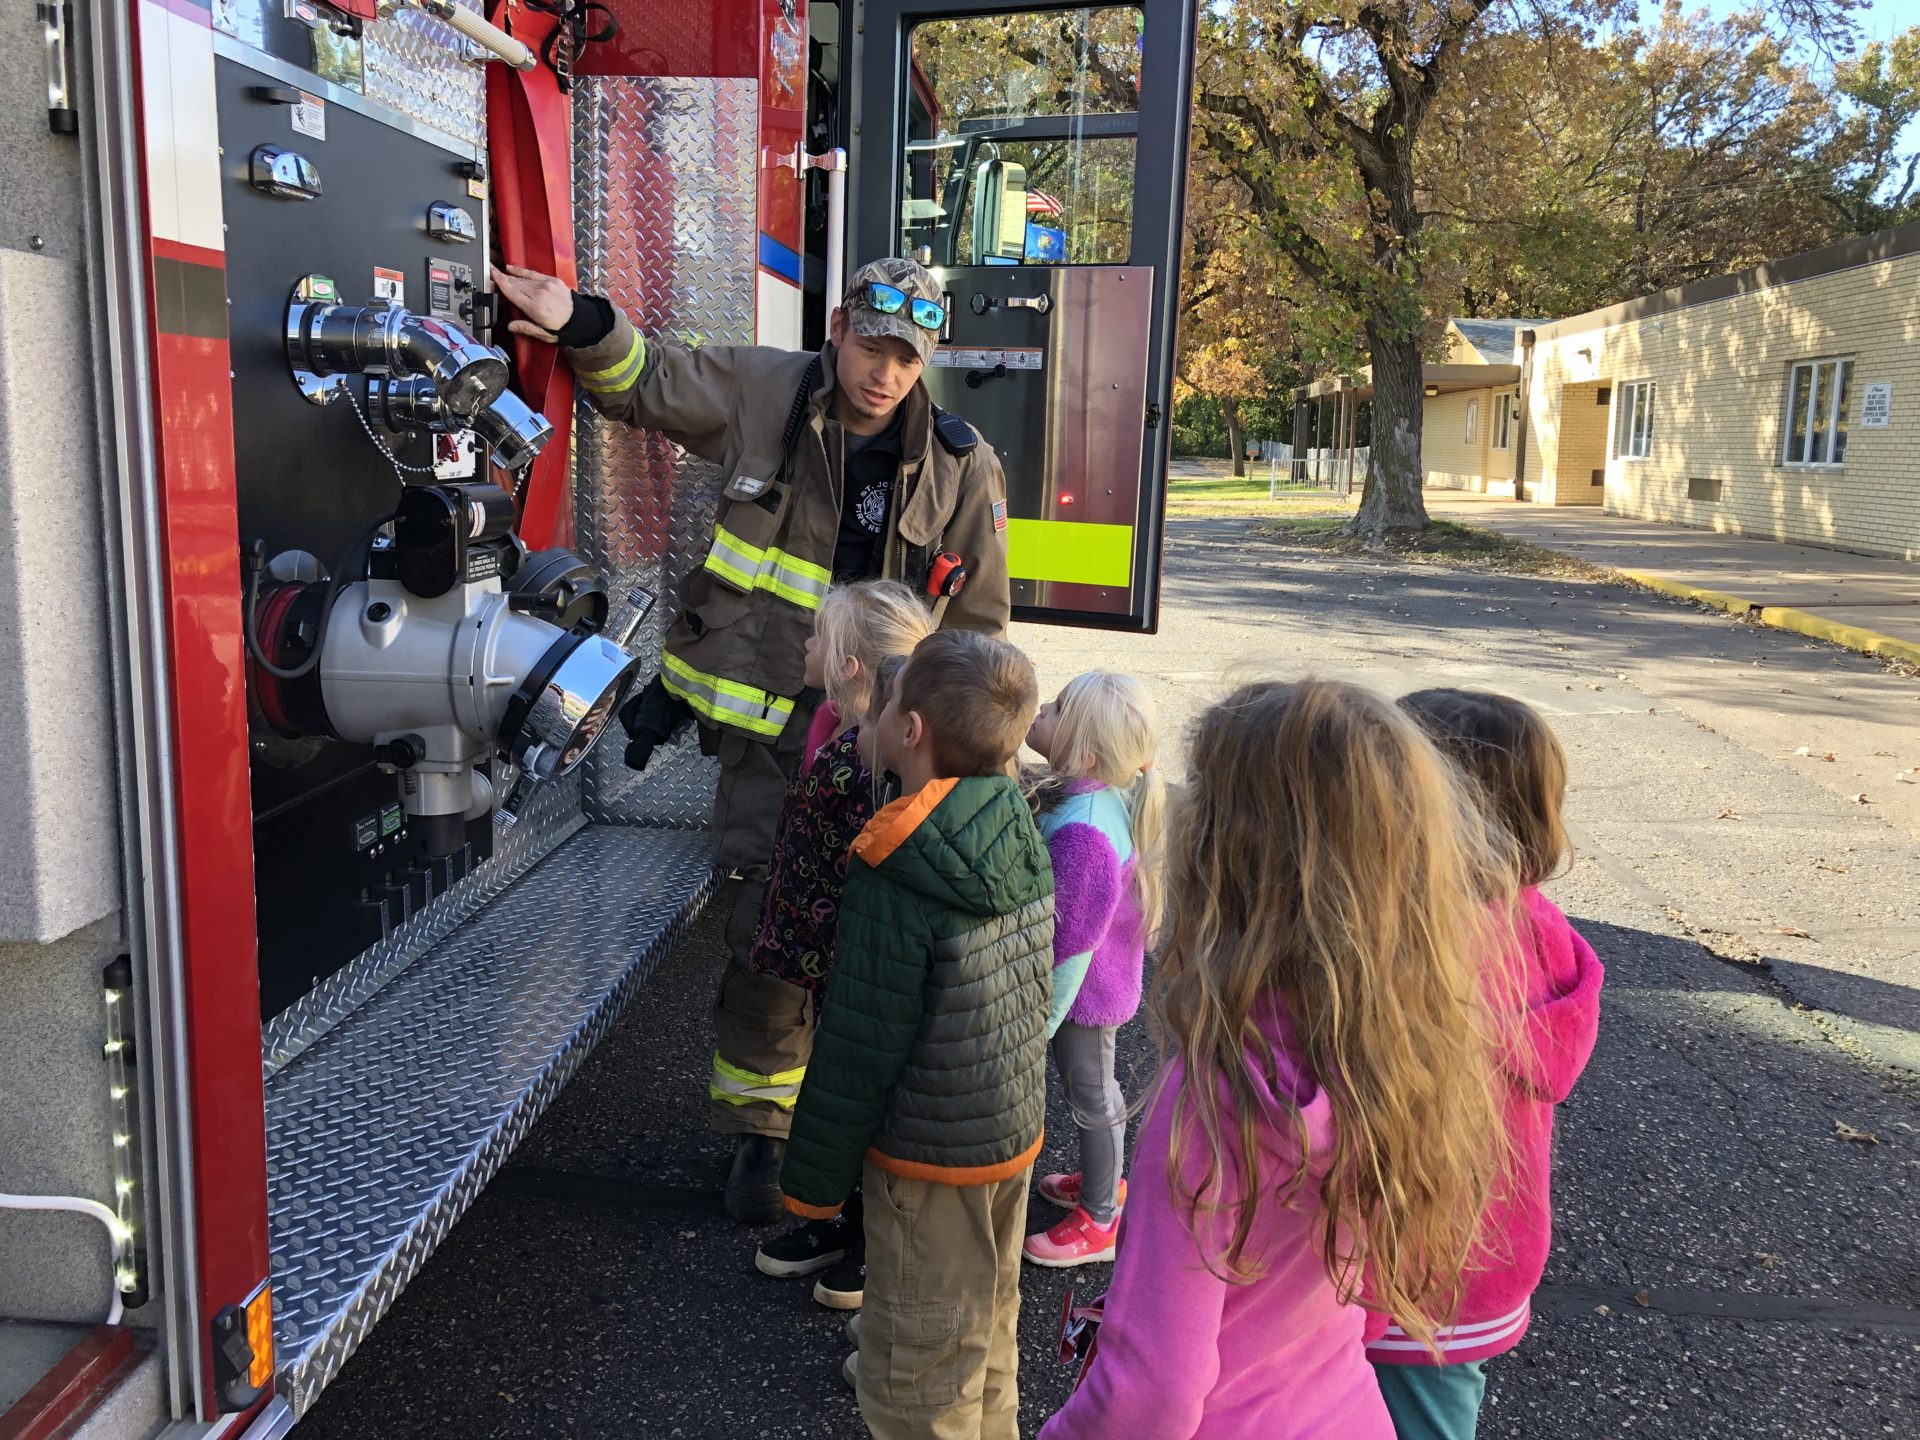 A group of children listen to a presentation by a firefighter near the fire truck.